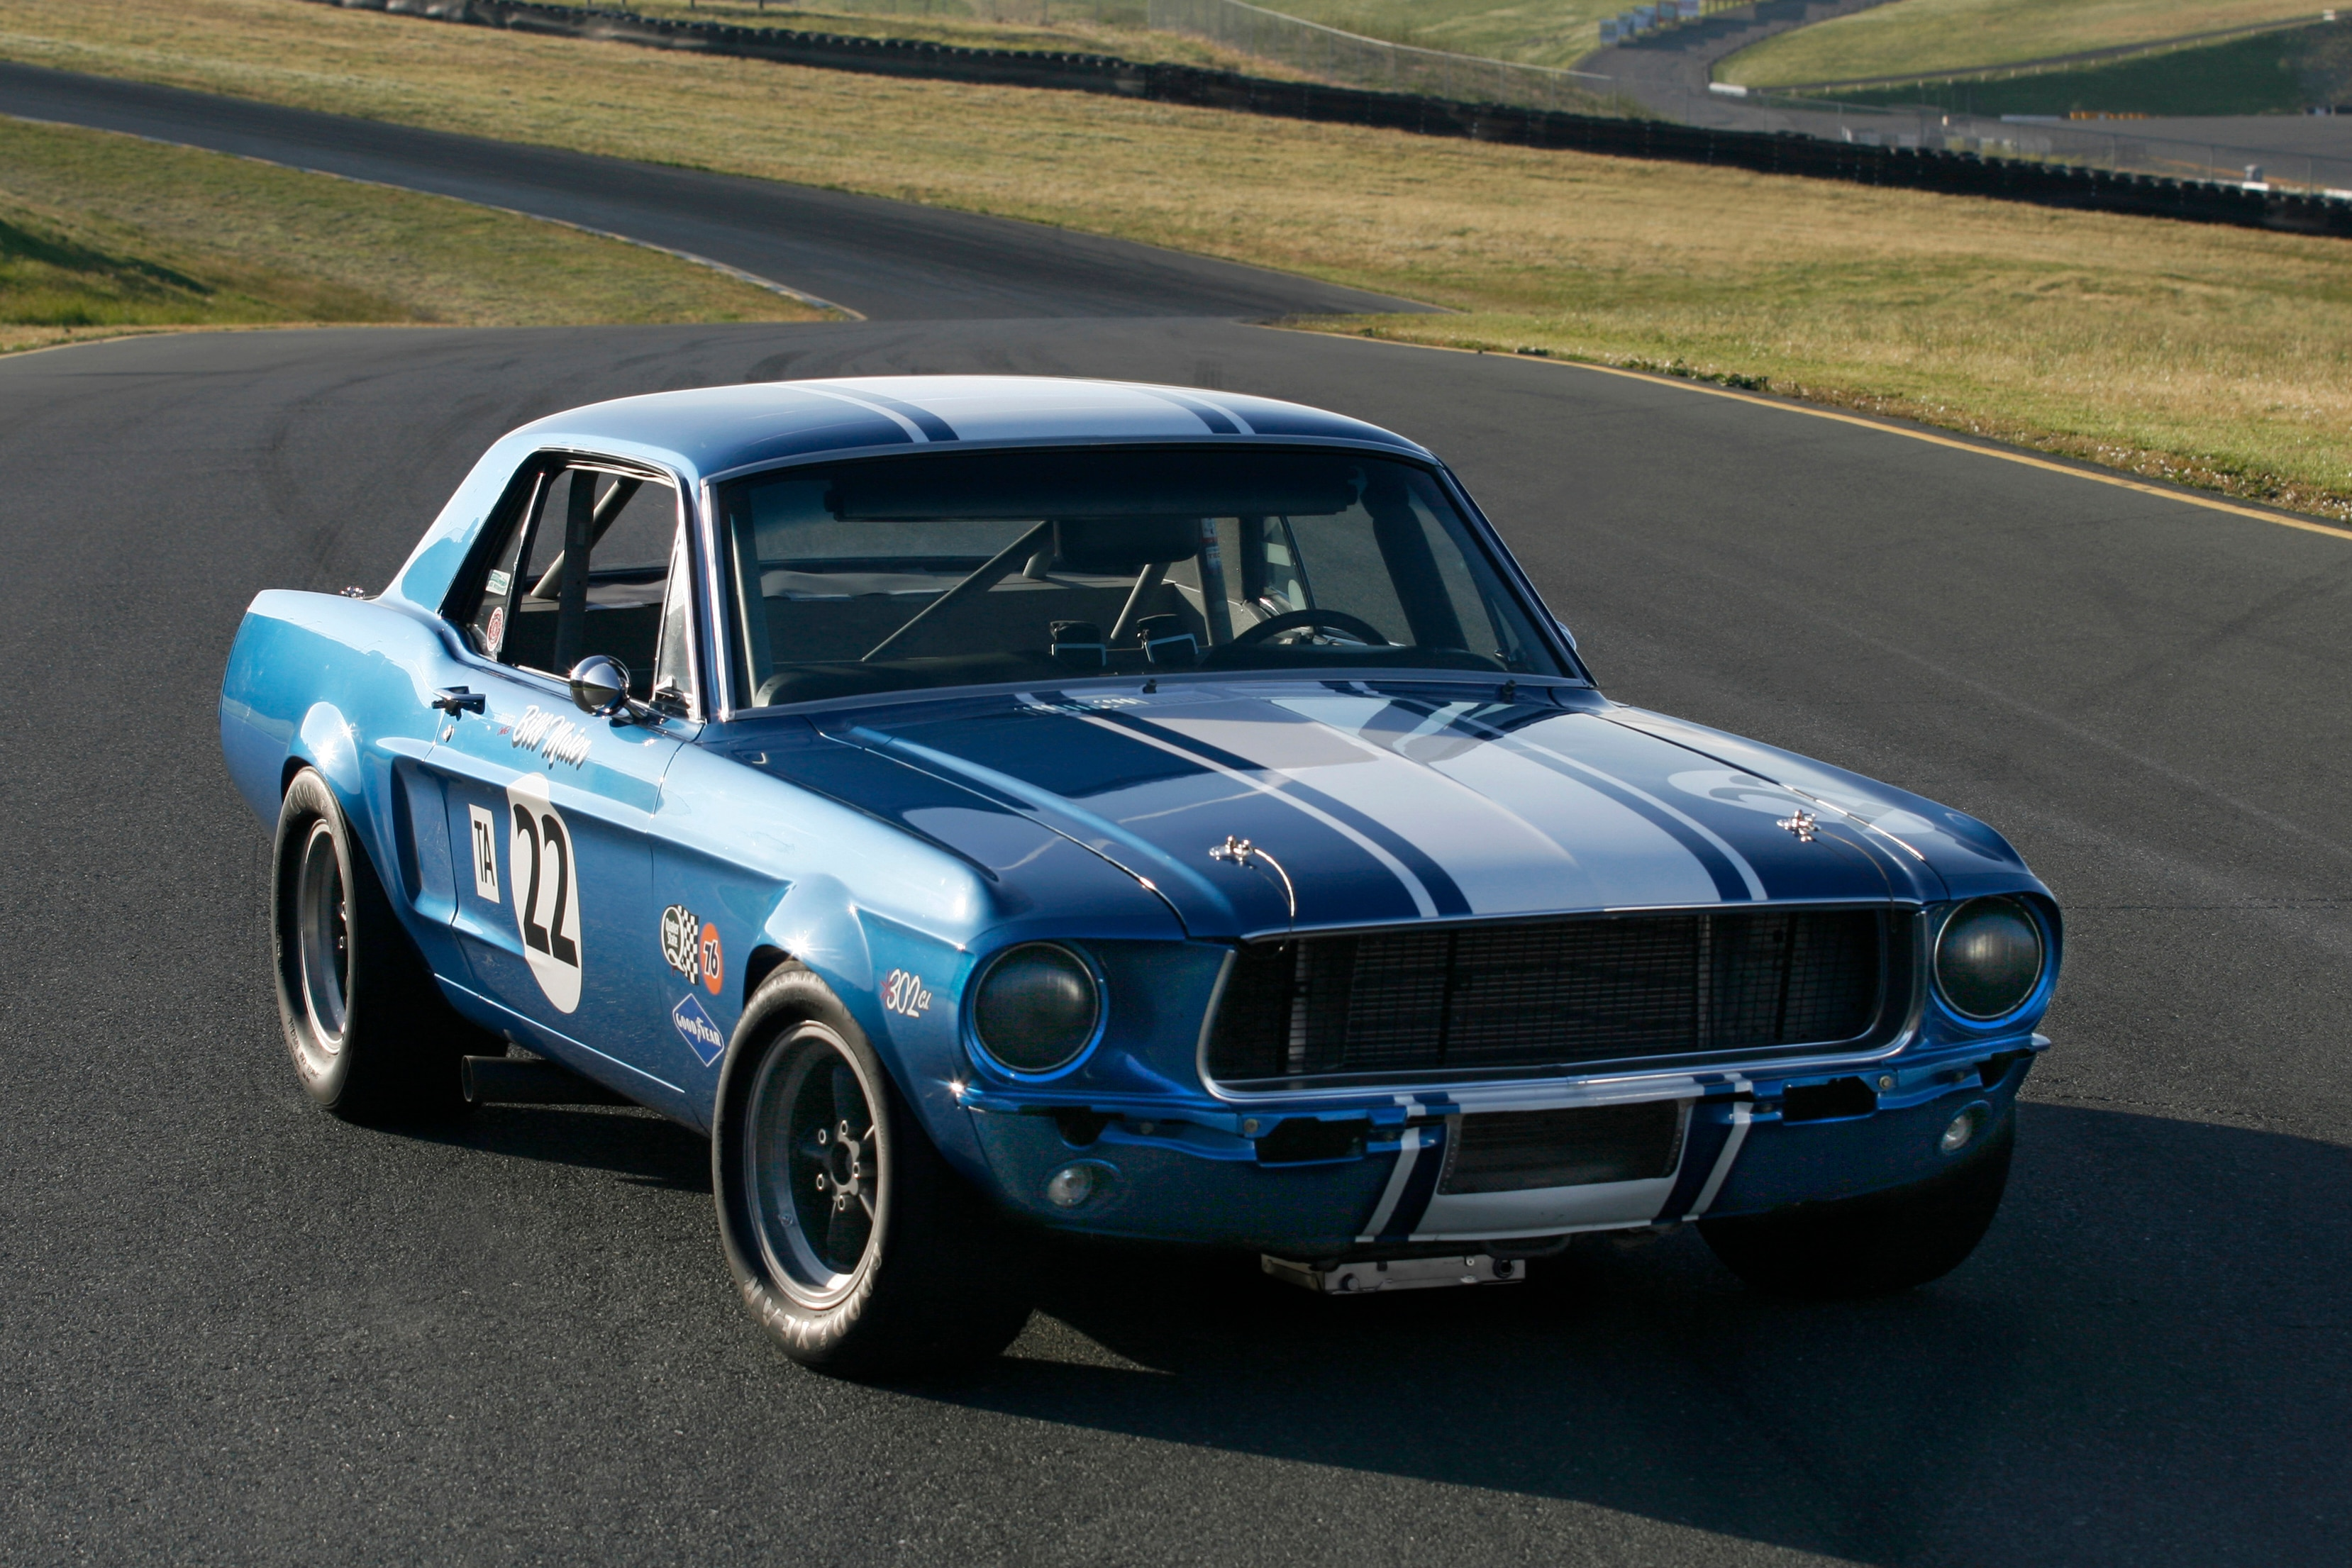 Blue White Ford Mustang